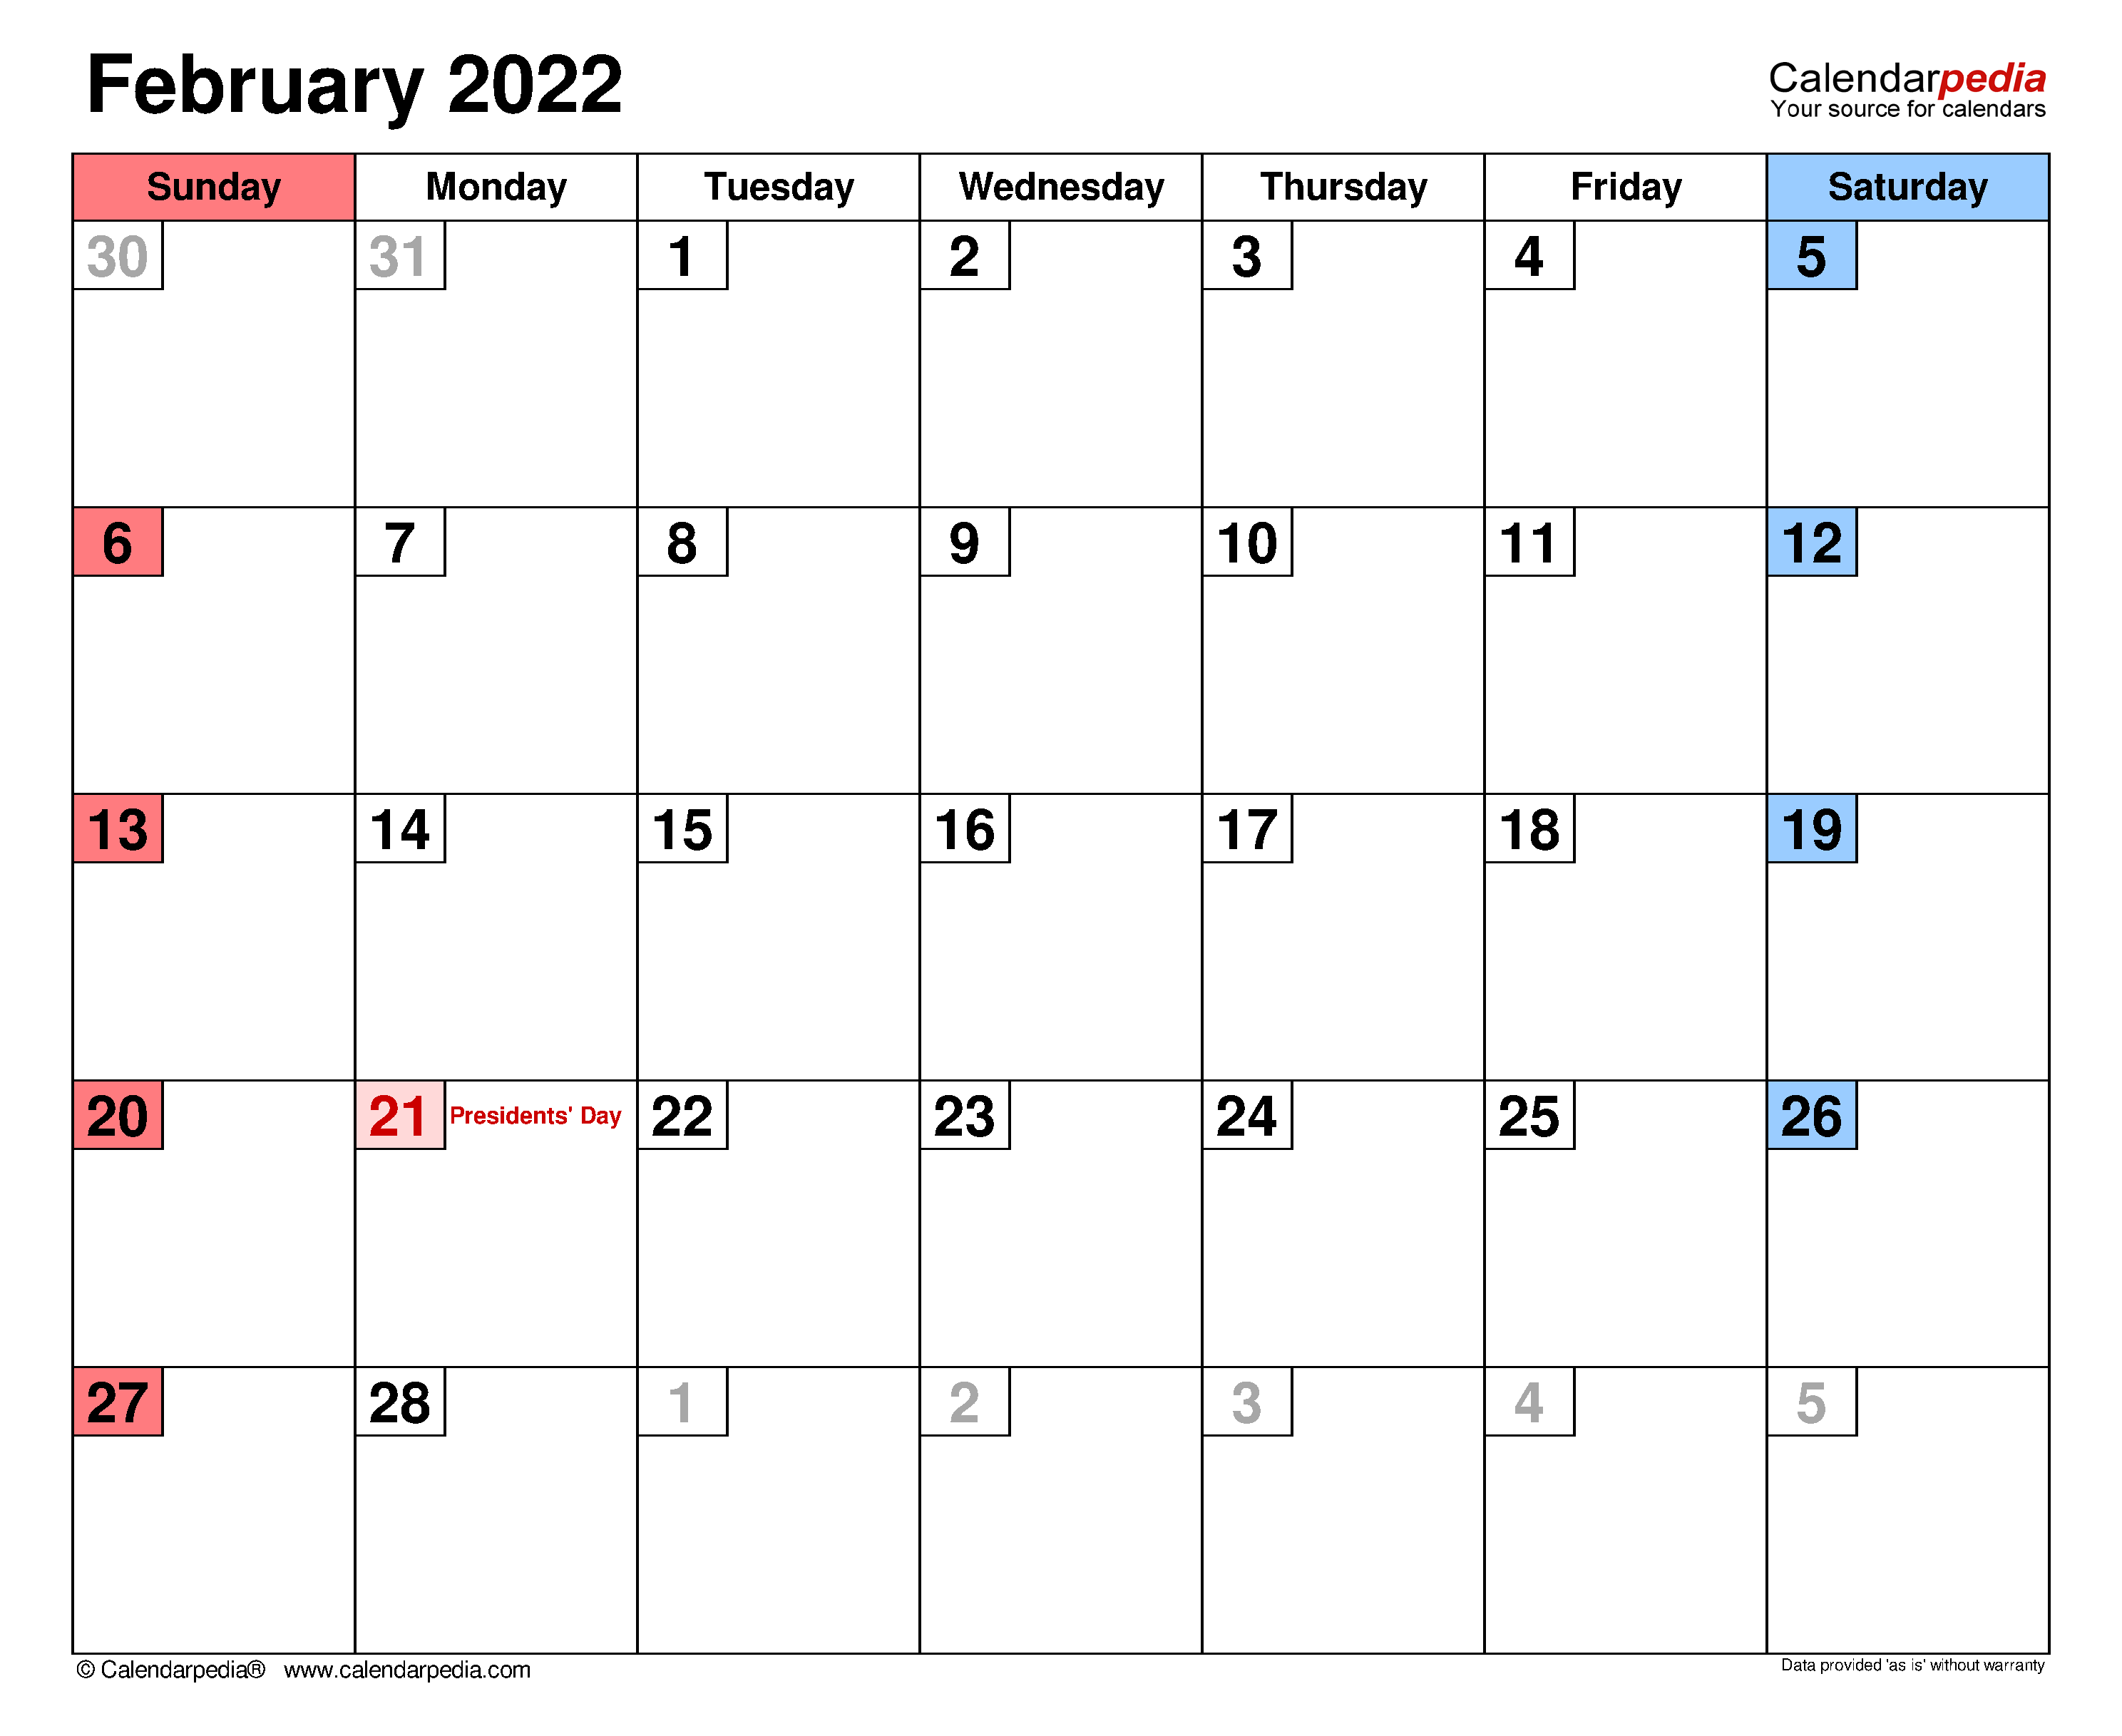 February 2022 Calendar | Templates For Word, Excel And Pdf For Blank Calendar For February 2022